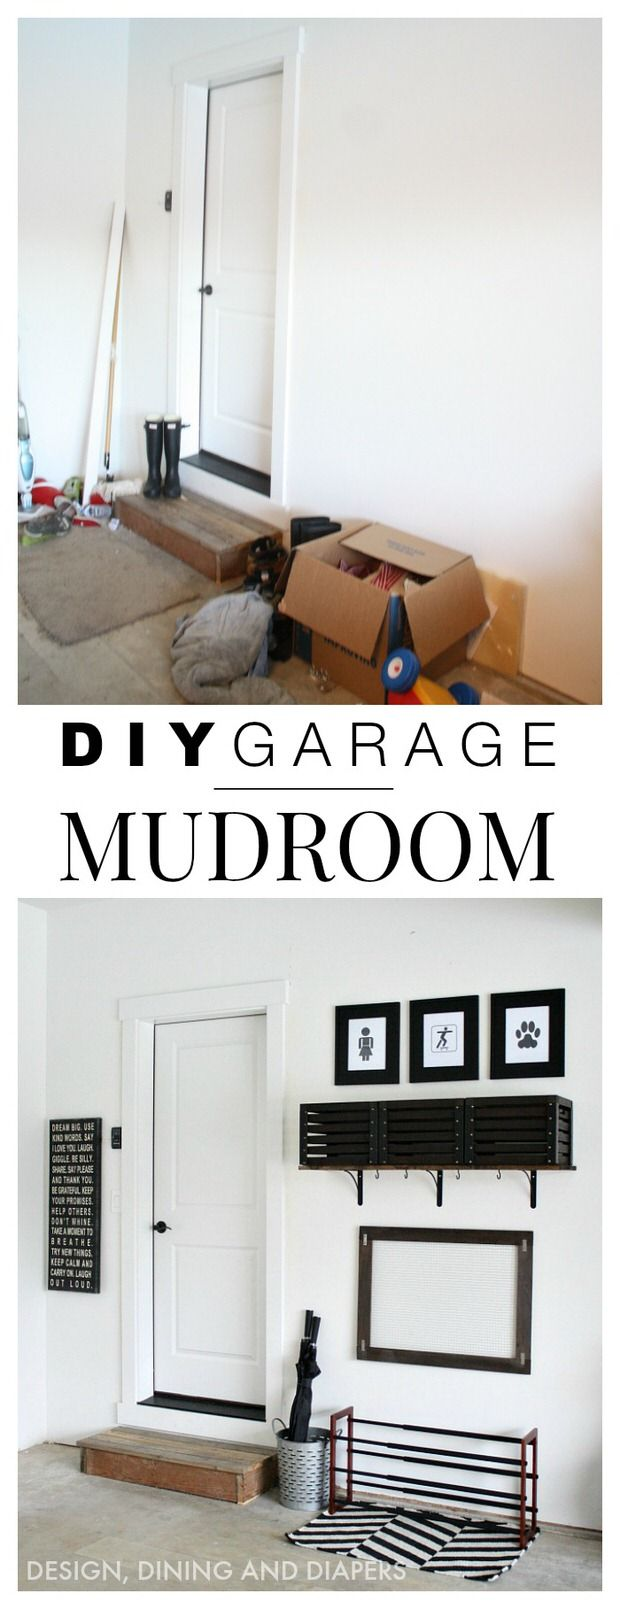 25 best garage decorating ideas on pinterest garage garage makeover projects organized garagegarage organizationorganizingorganization ideasgarage decorating